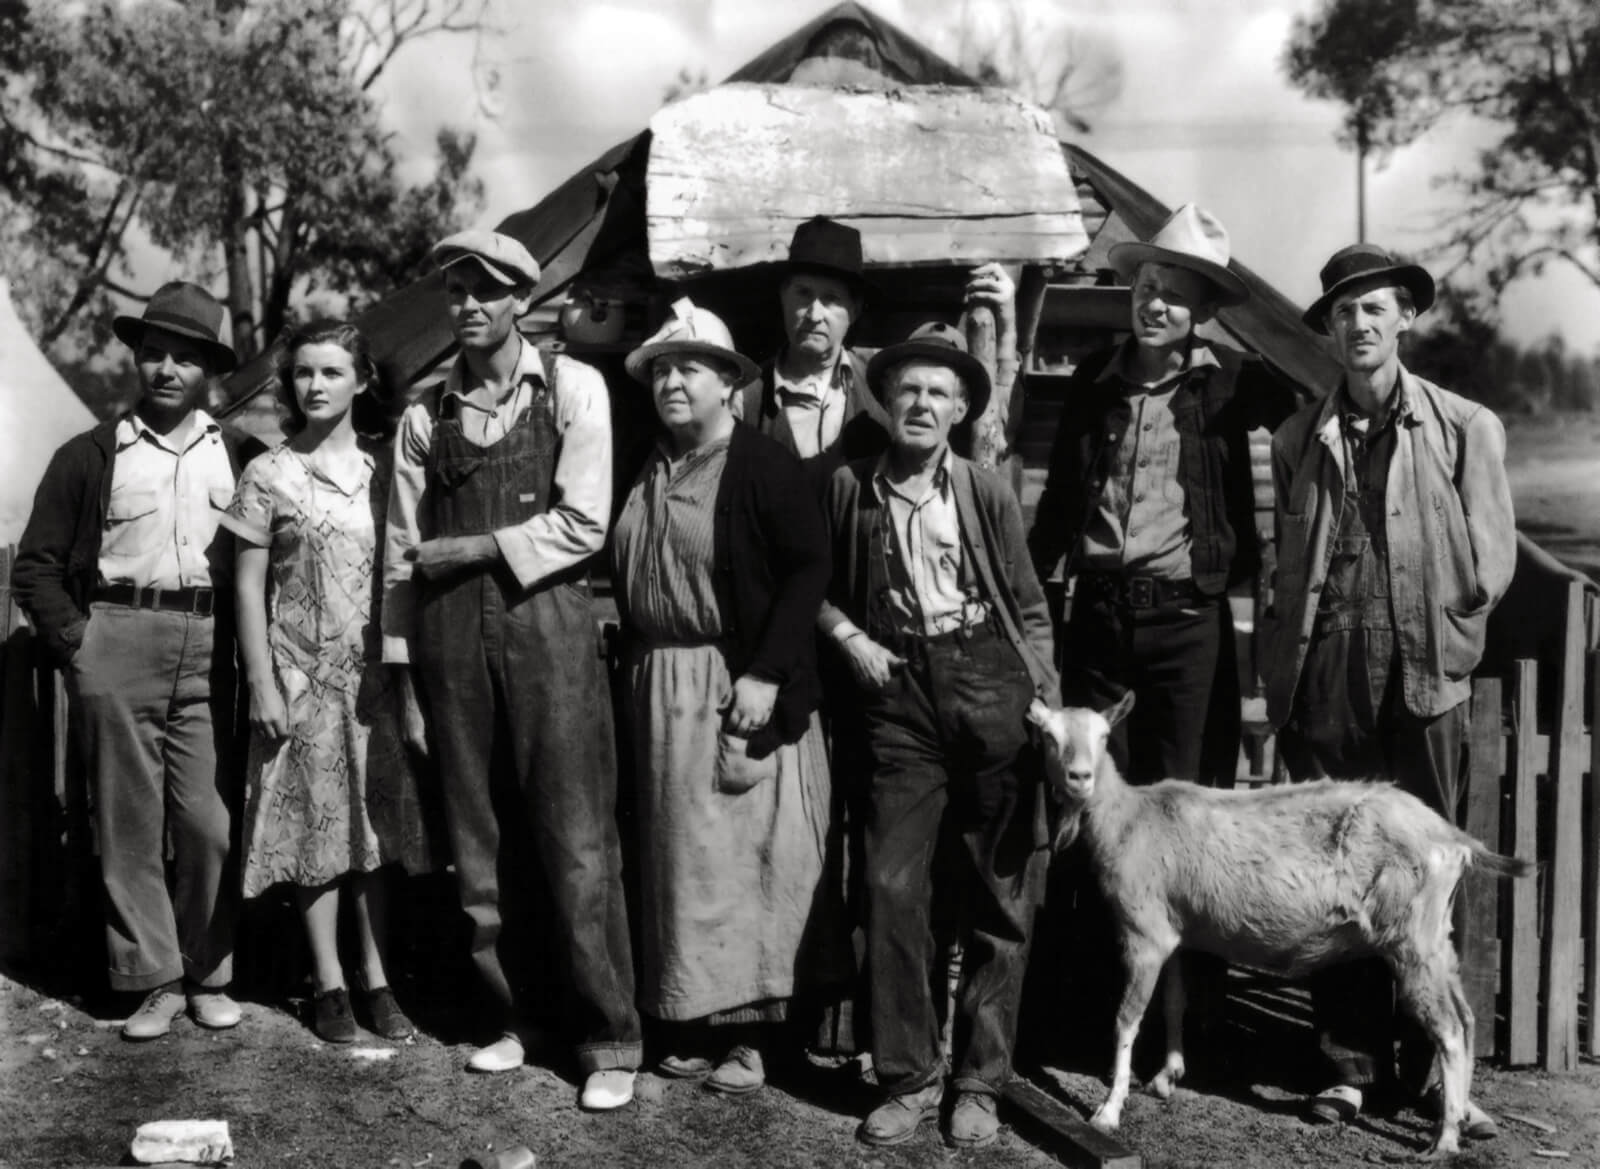 Grapes of Wrath 1940 Still from Movie